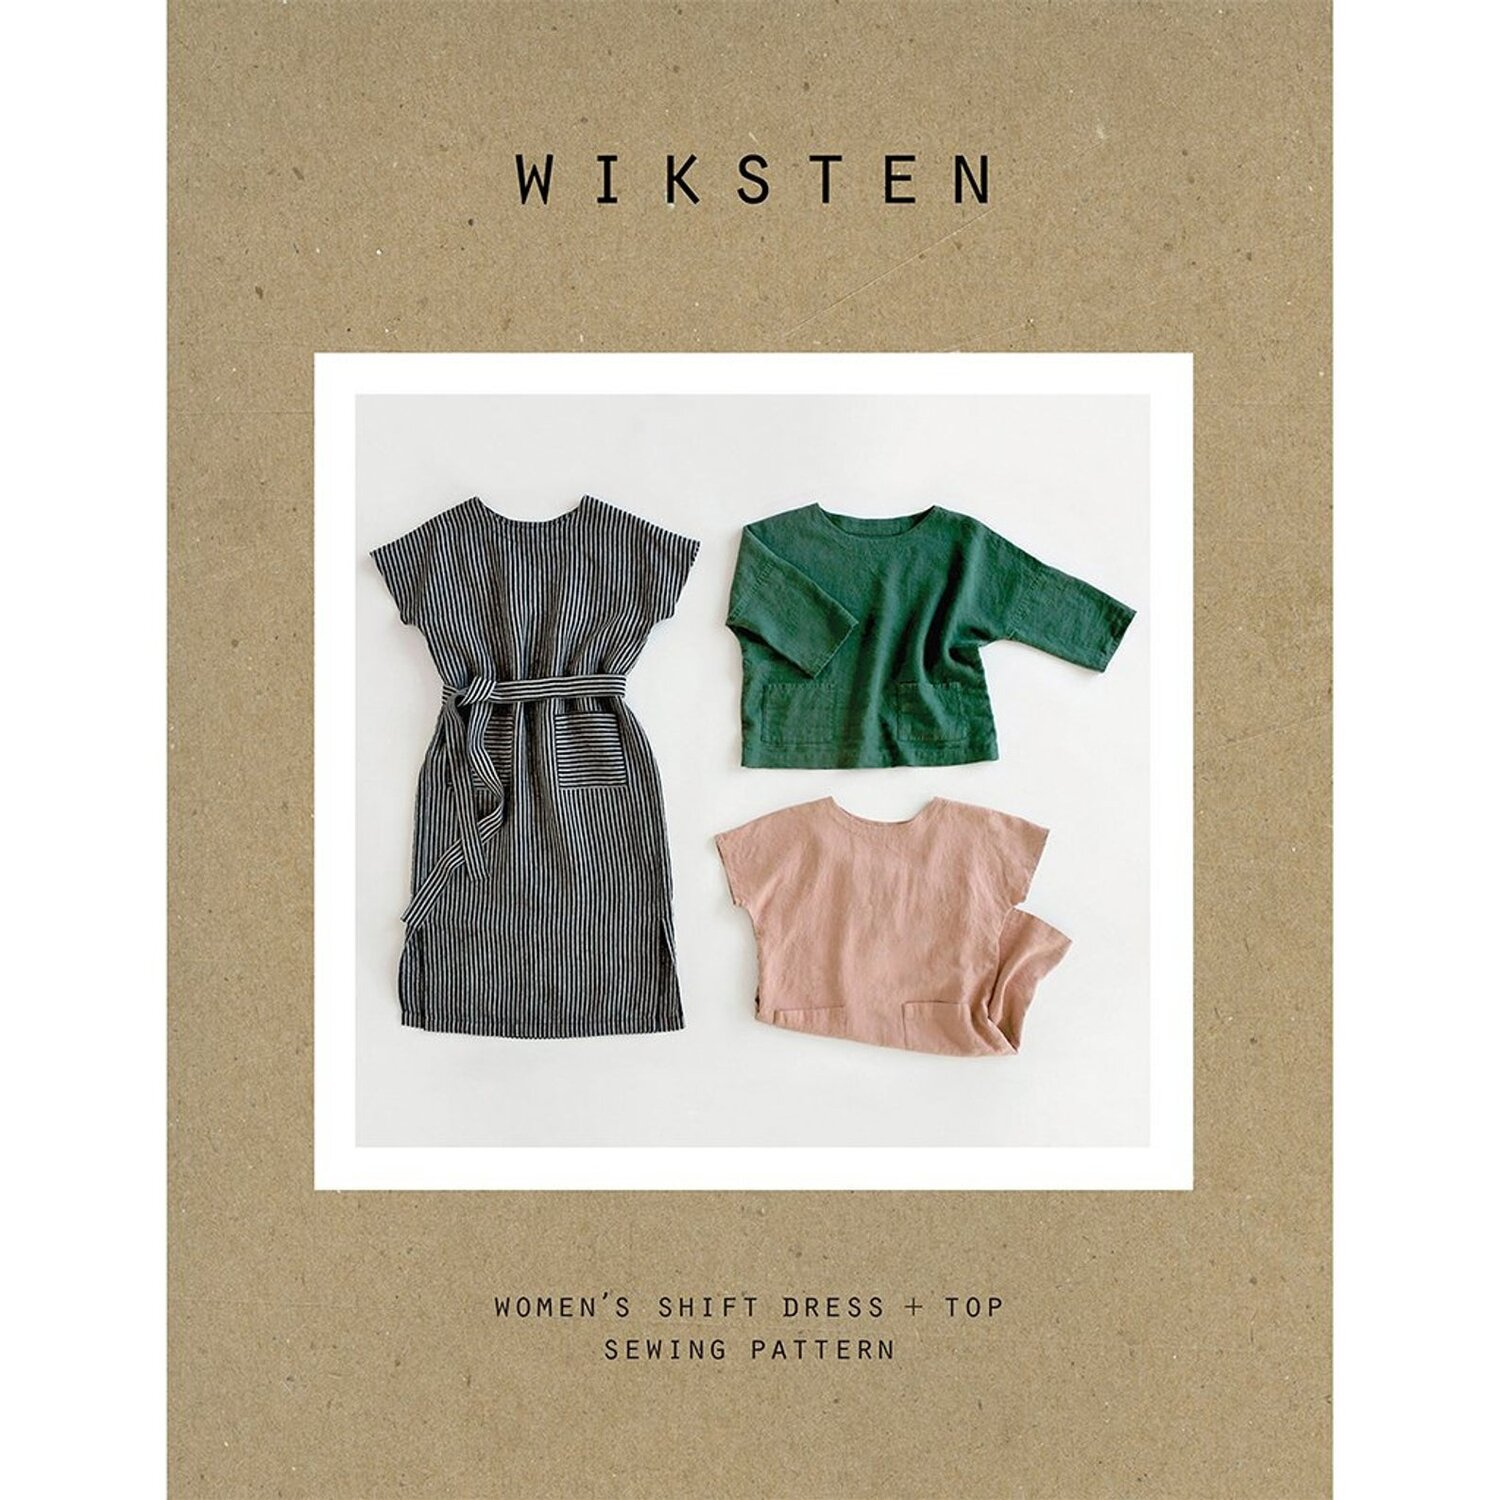 Wiksten Shift Dress - Level: Advanced Beginner. You are comfortable with your machine and have made a few simple garments.